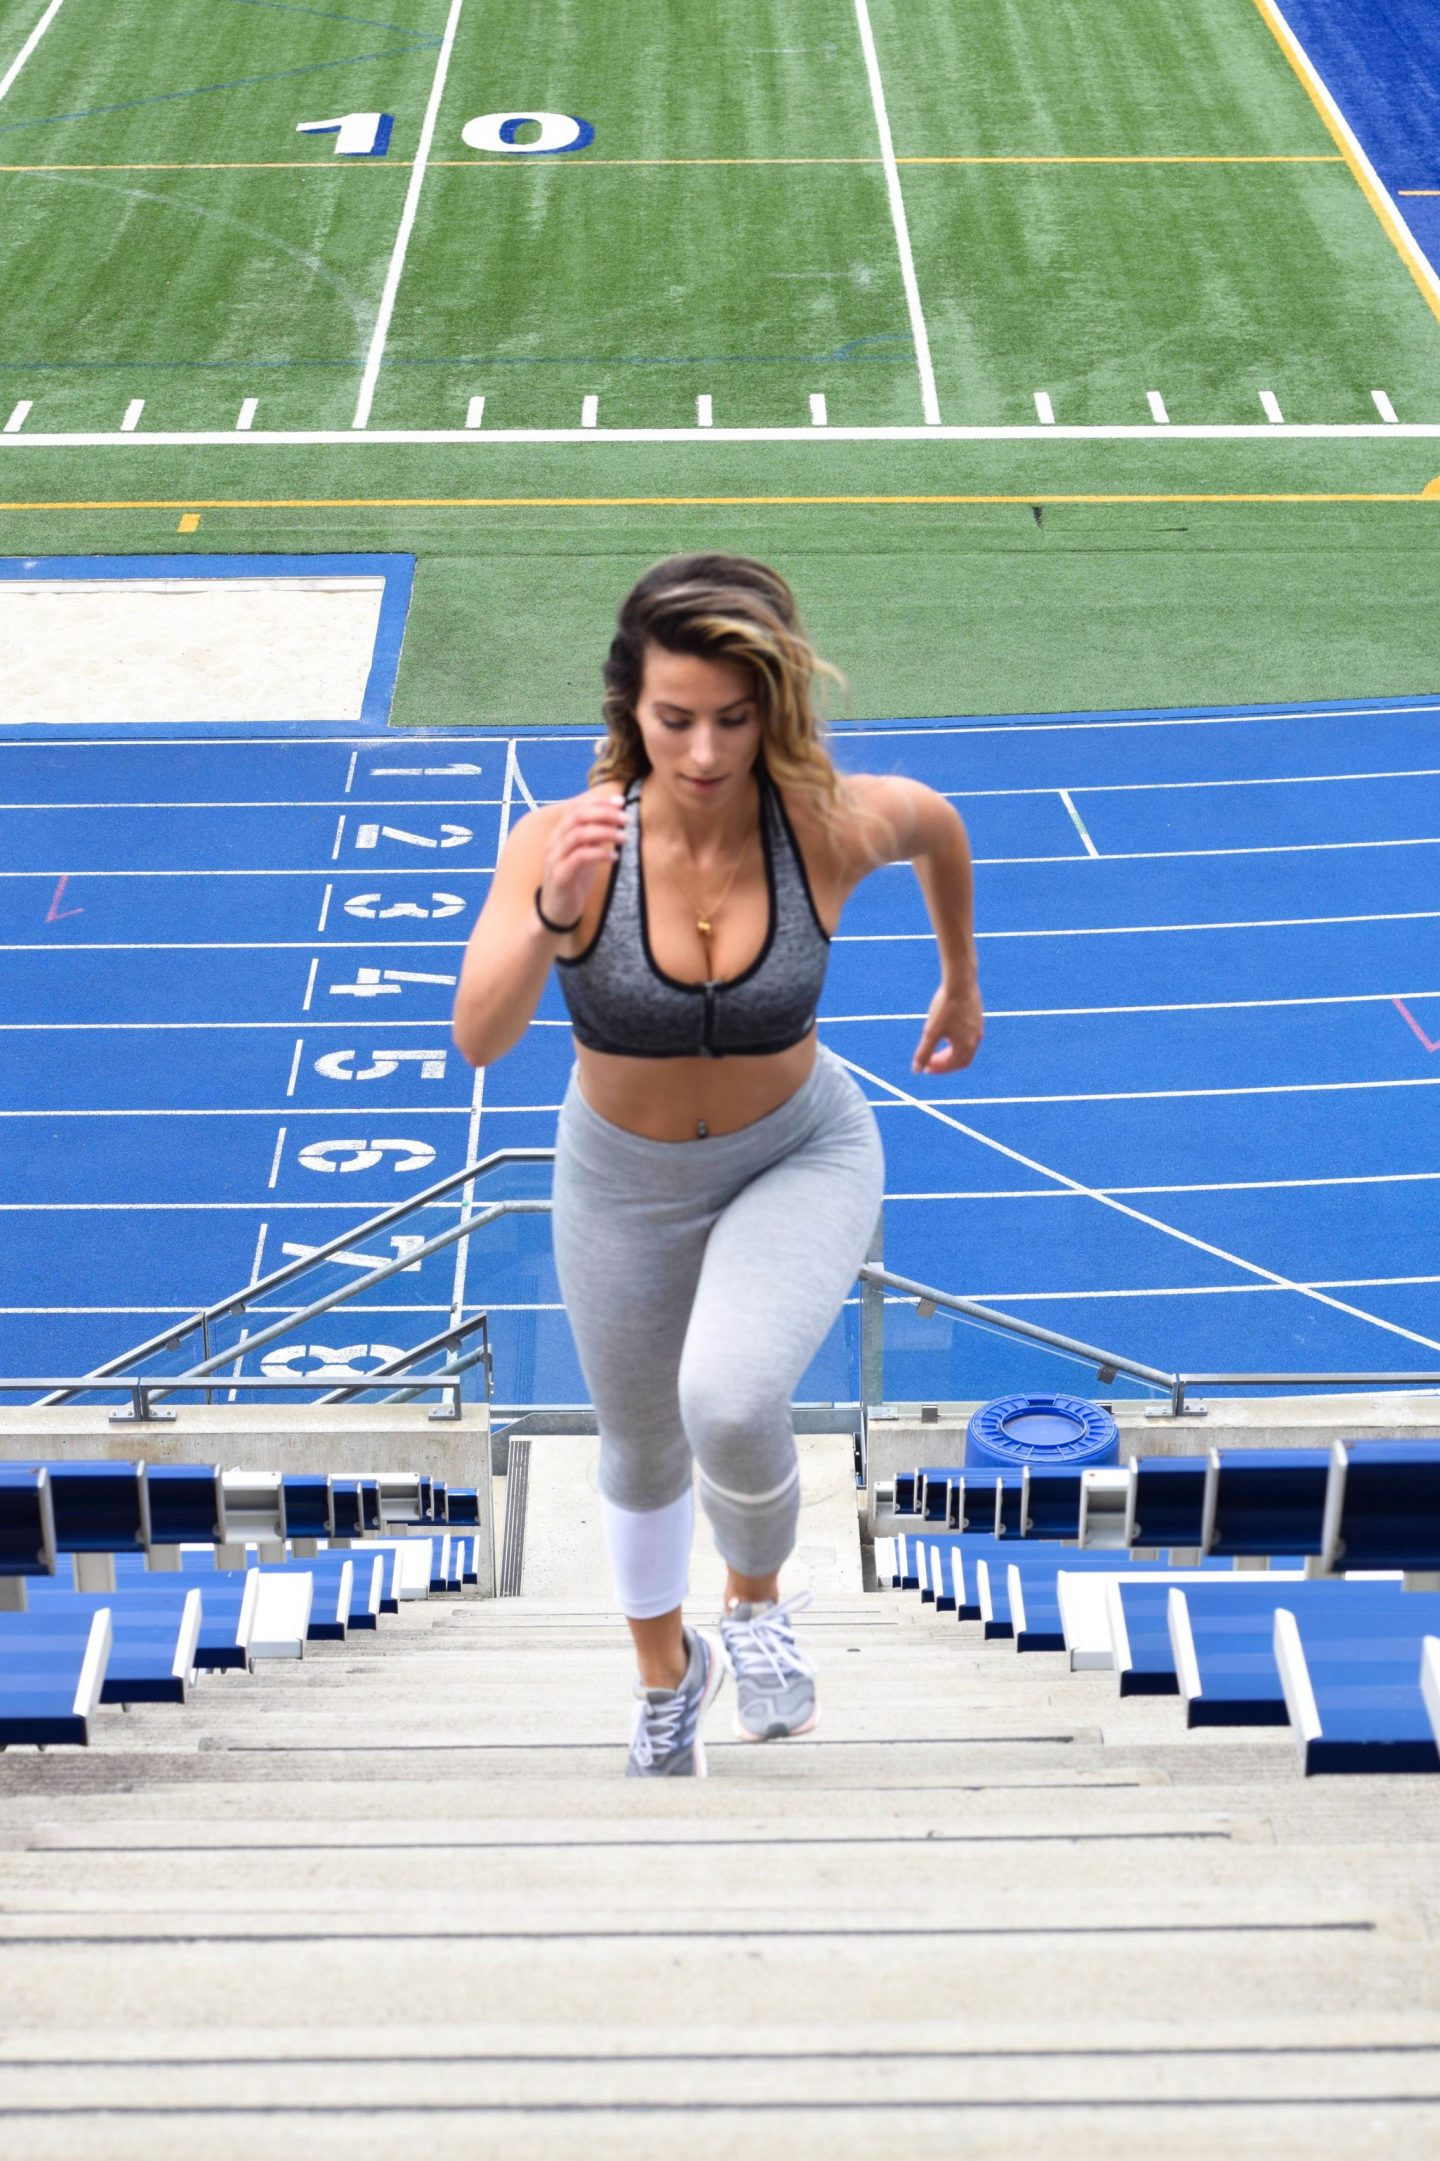 Motivation Monday: Running Stairs- The Best Cardio!